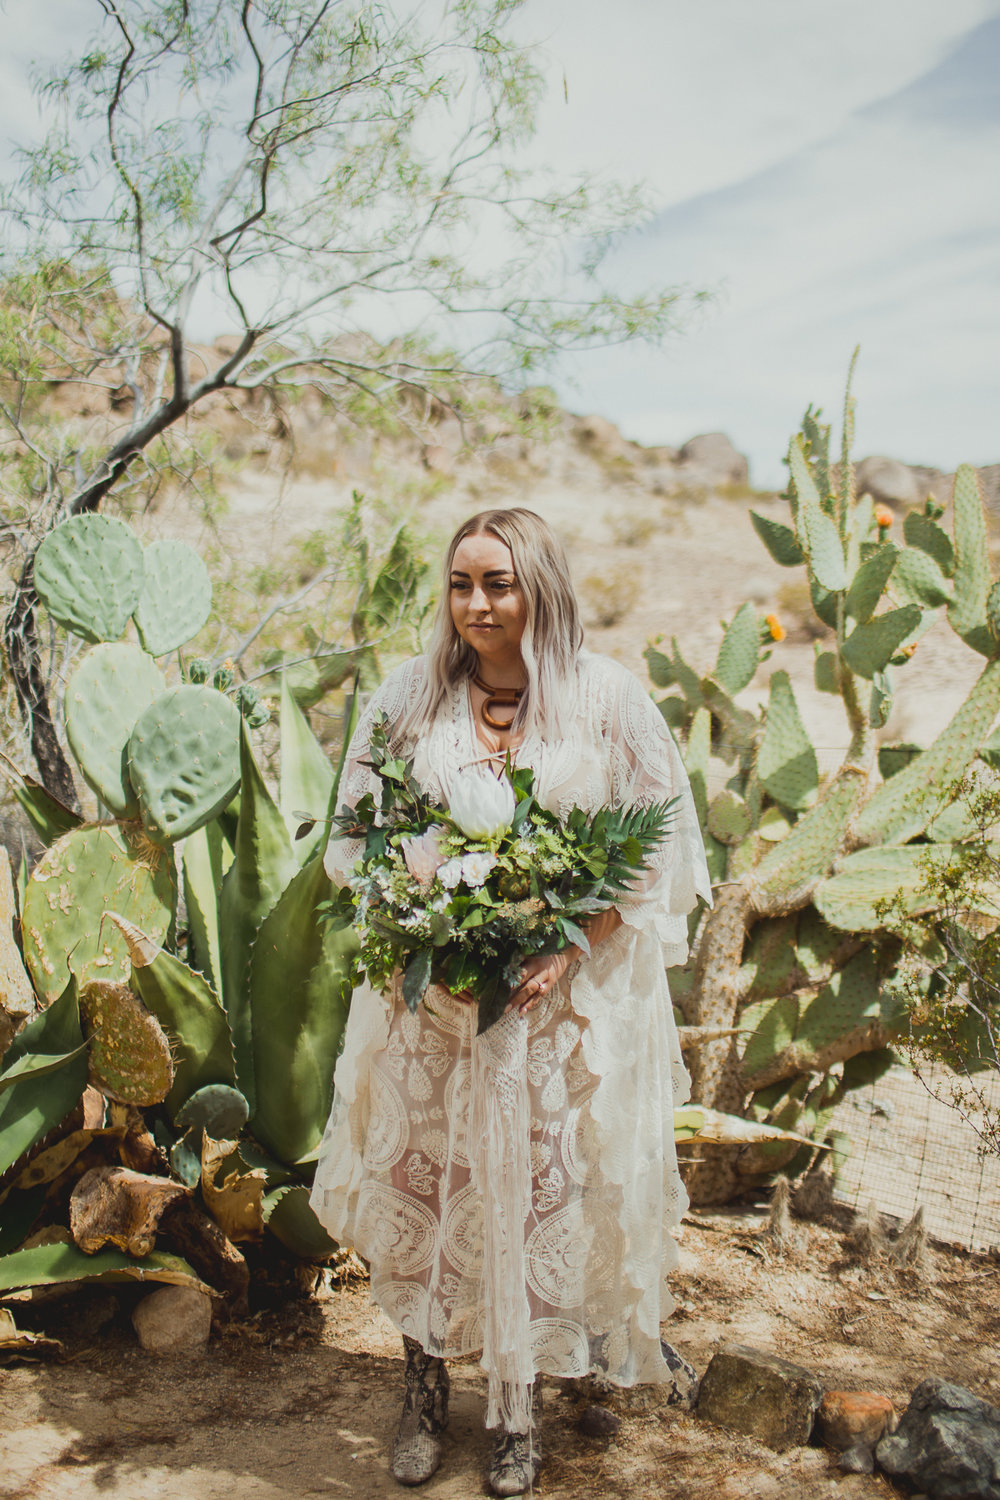 taryn-adam-joshua-tree-elopement-kelley-raye-los-angeles-wedding-photographer-67.jpg